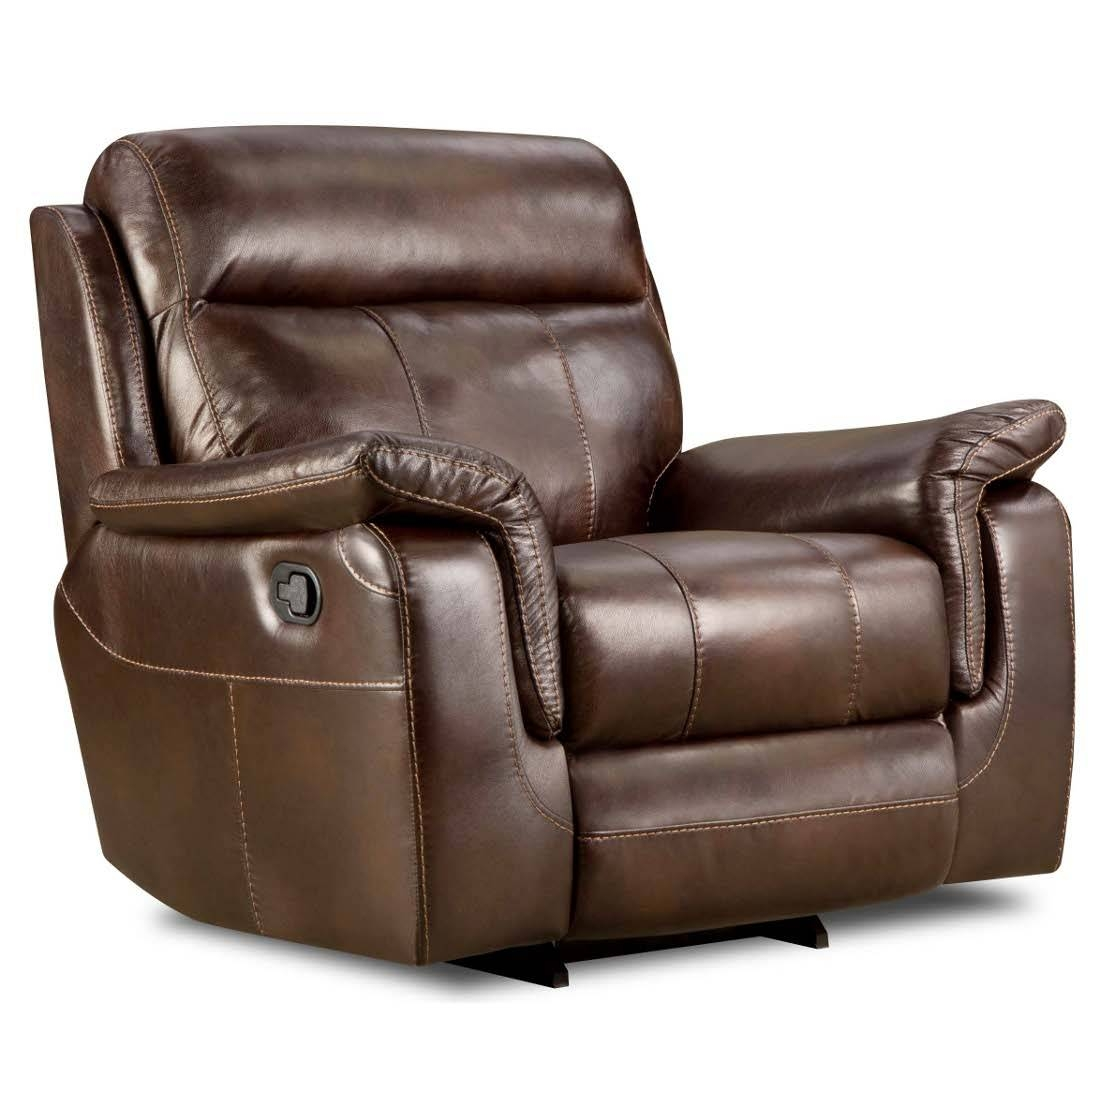 Lowery Recliner (Ms86210) : Living Room Furniture | Conn's pertaining to Recliner Sofa Chairs (Image 19 of 30)